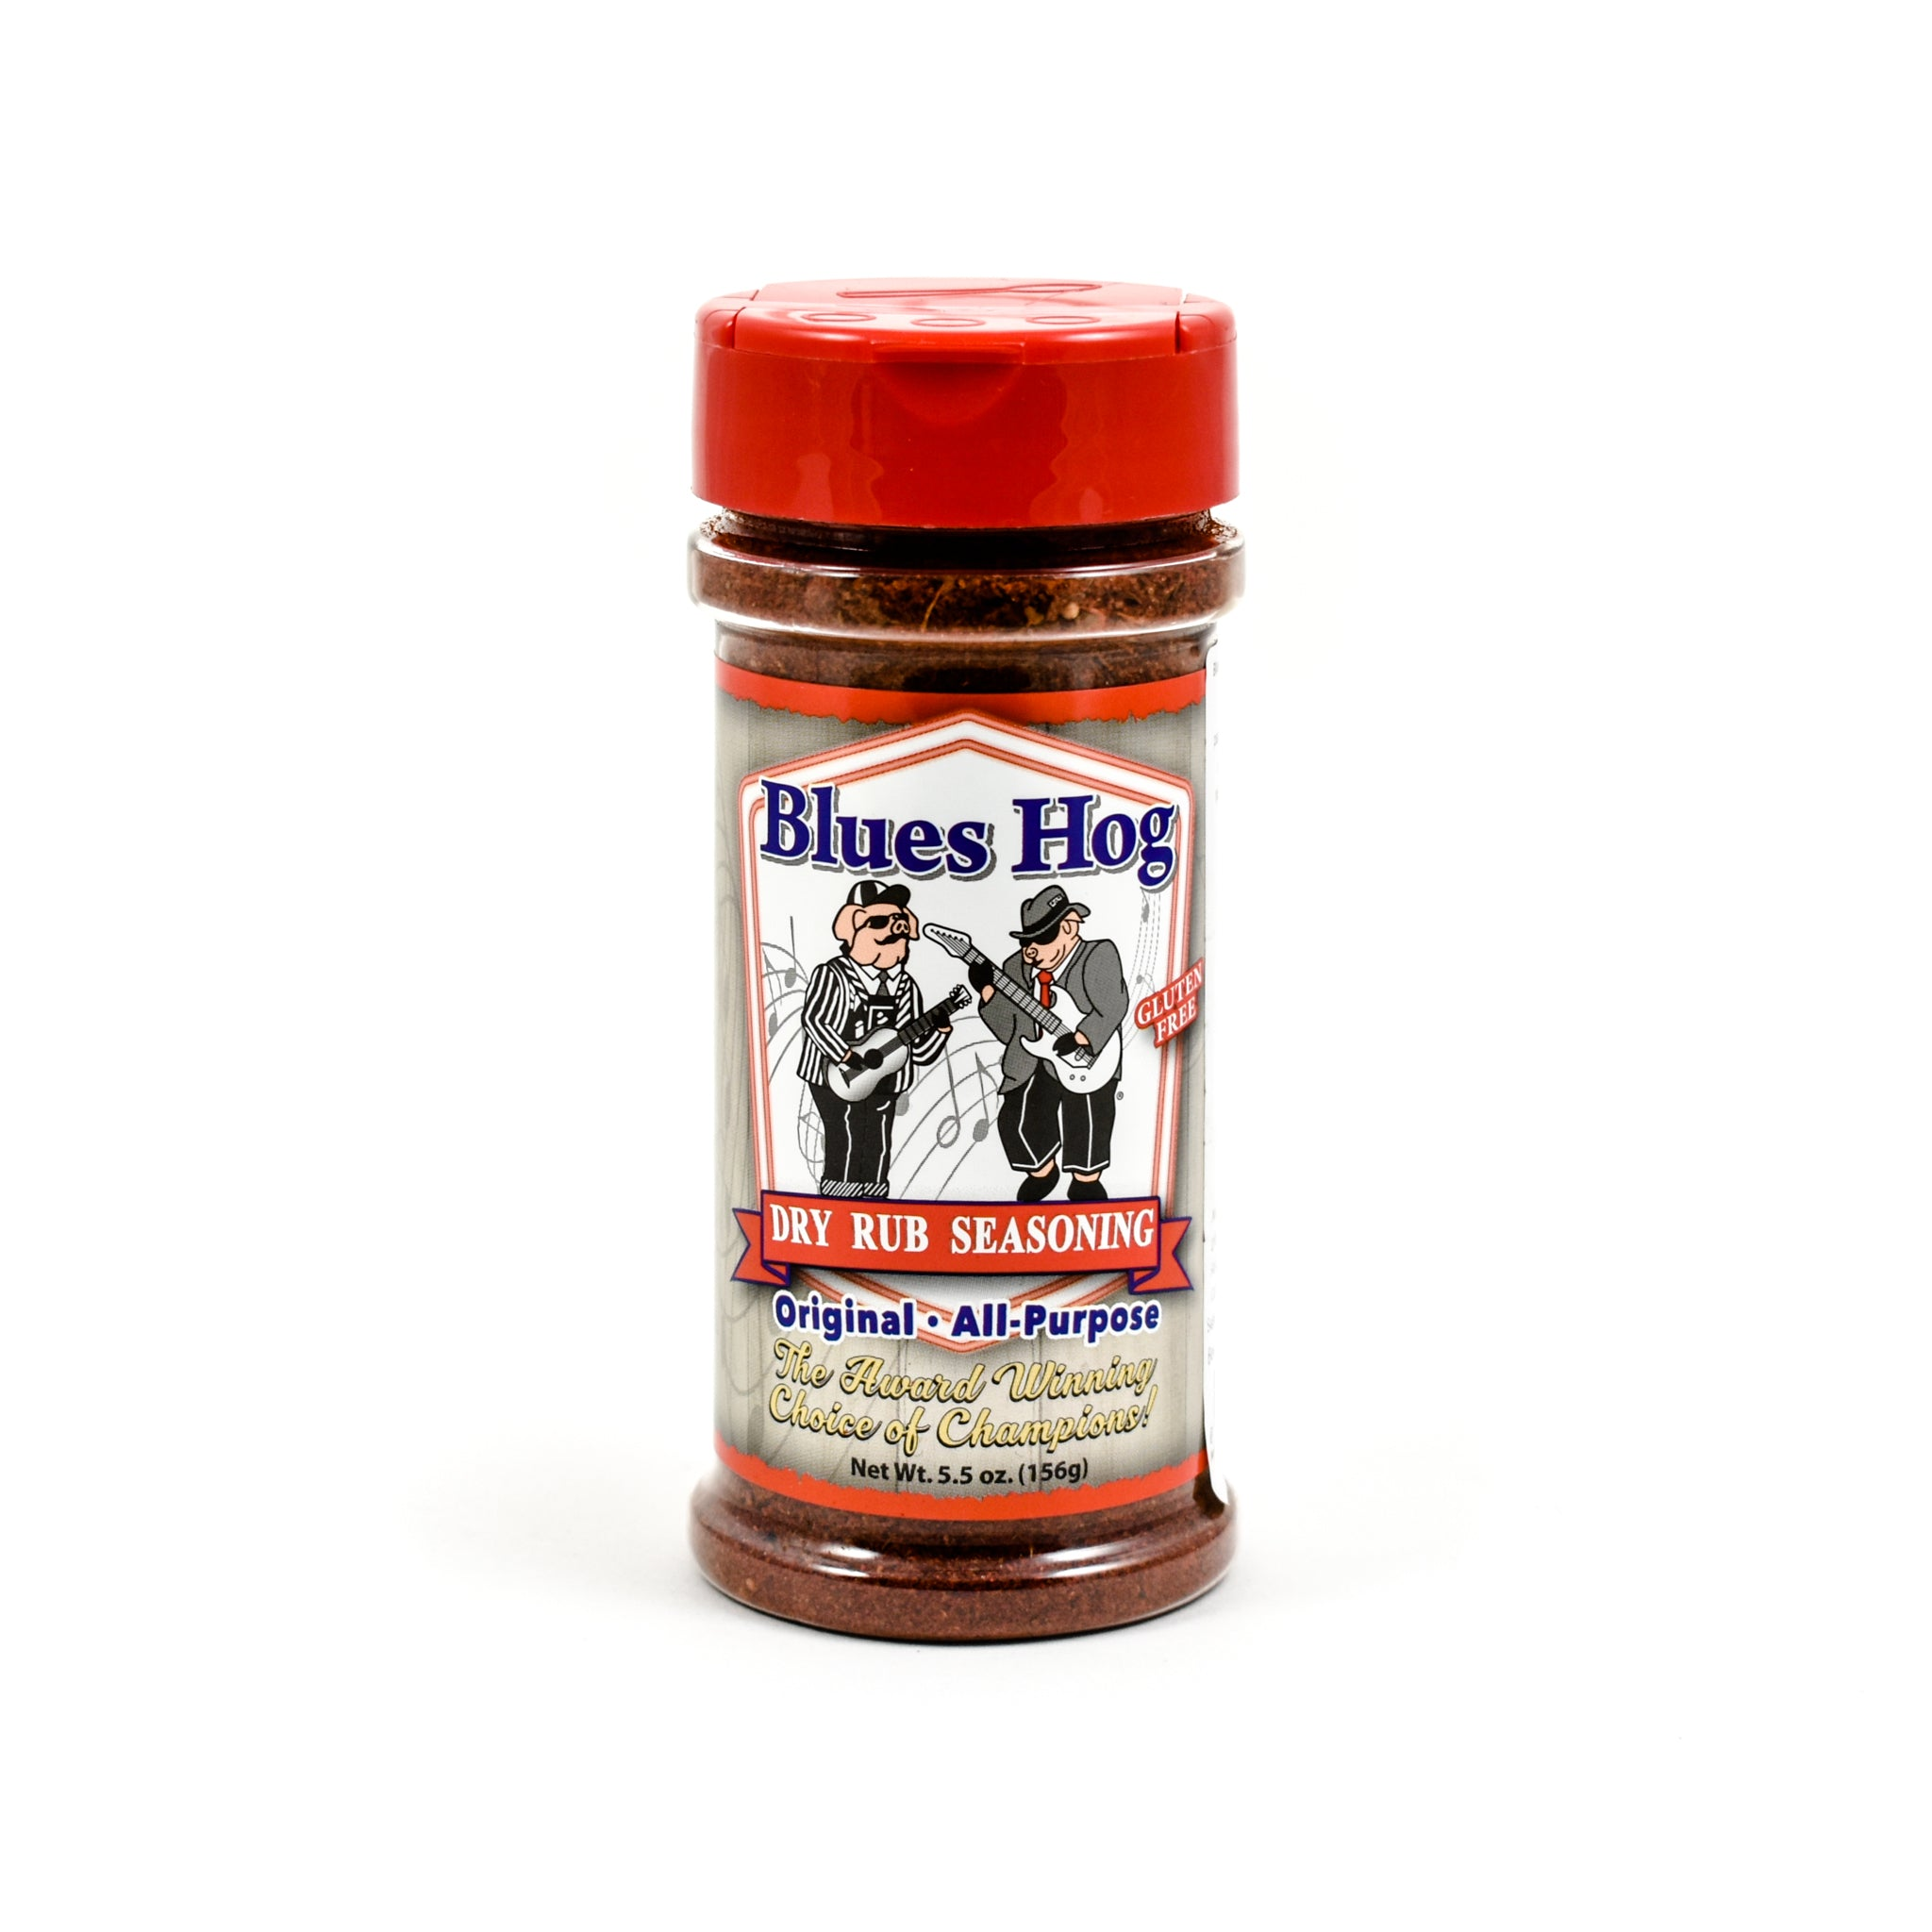 Blues Hog Dry Rub 156g Ingredients Herbs & Spices BBQ Rubs American Food